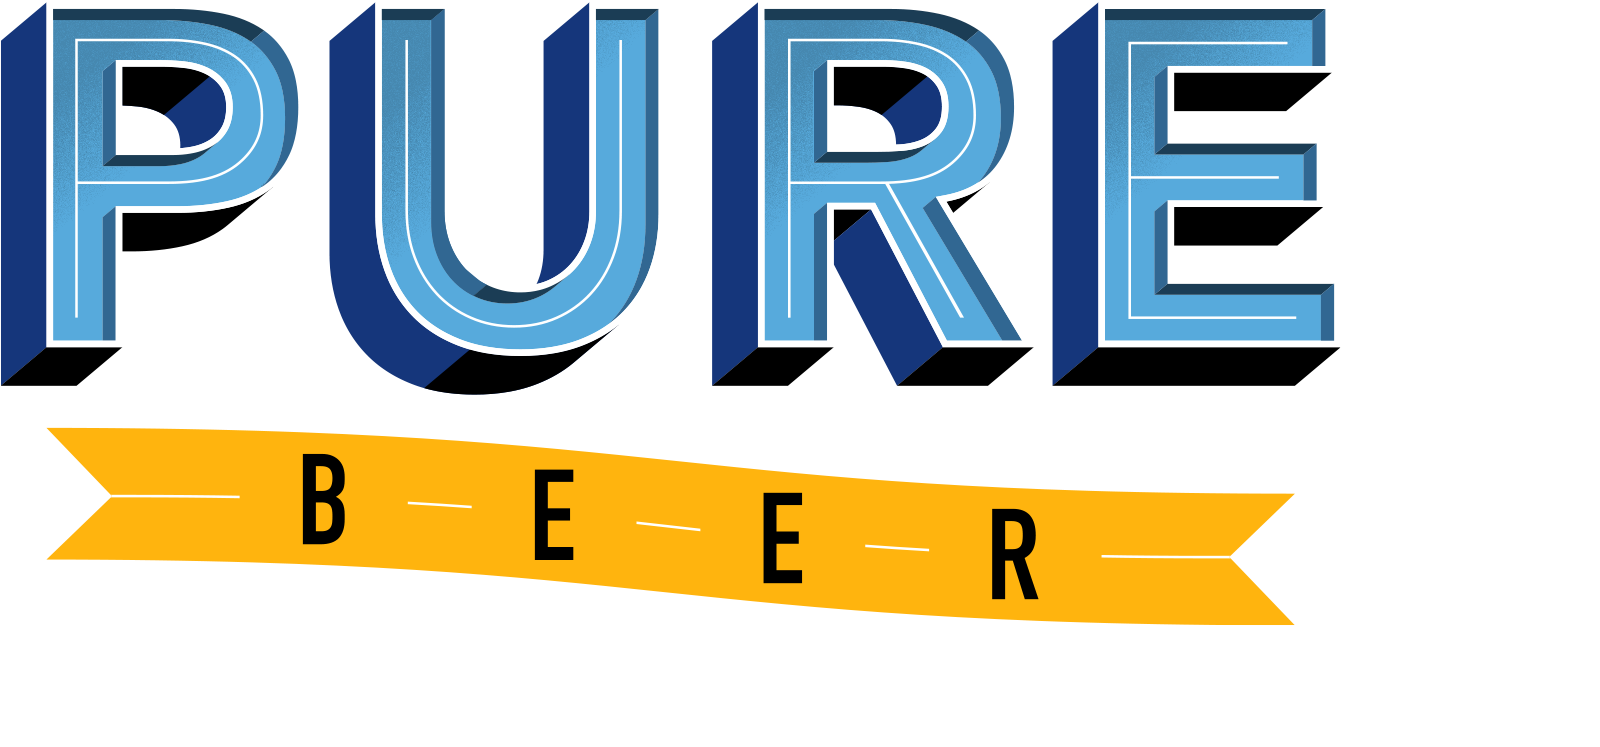 Pure Beer logo